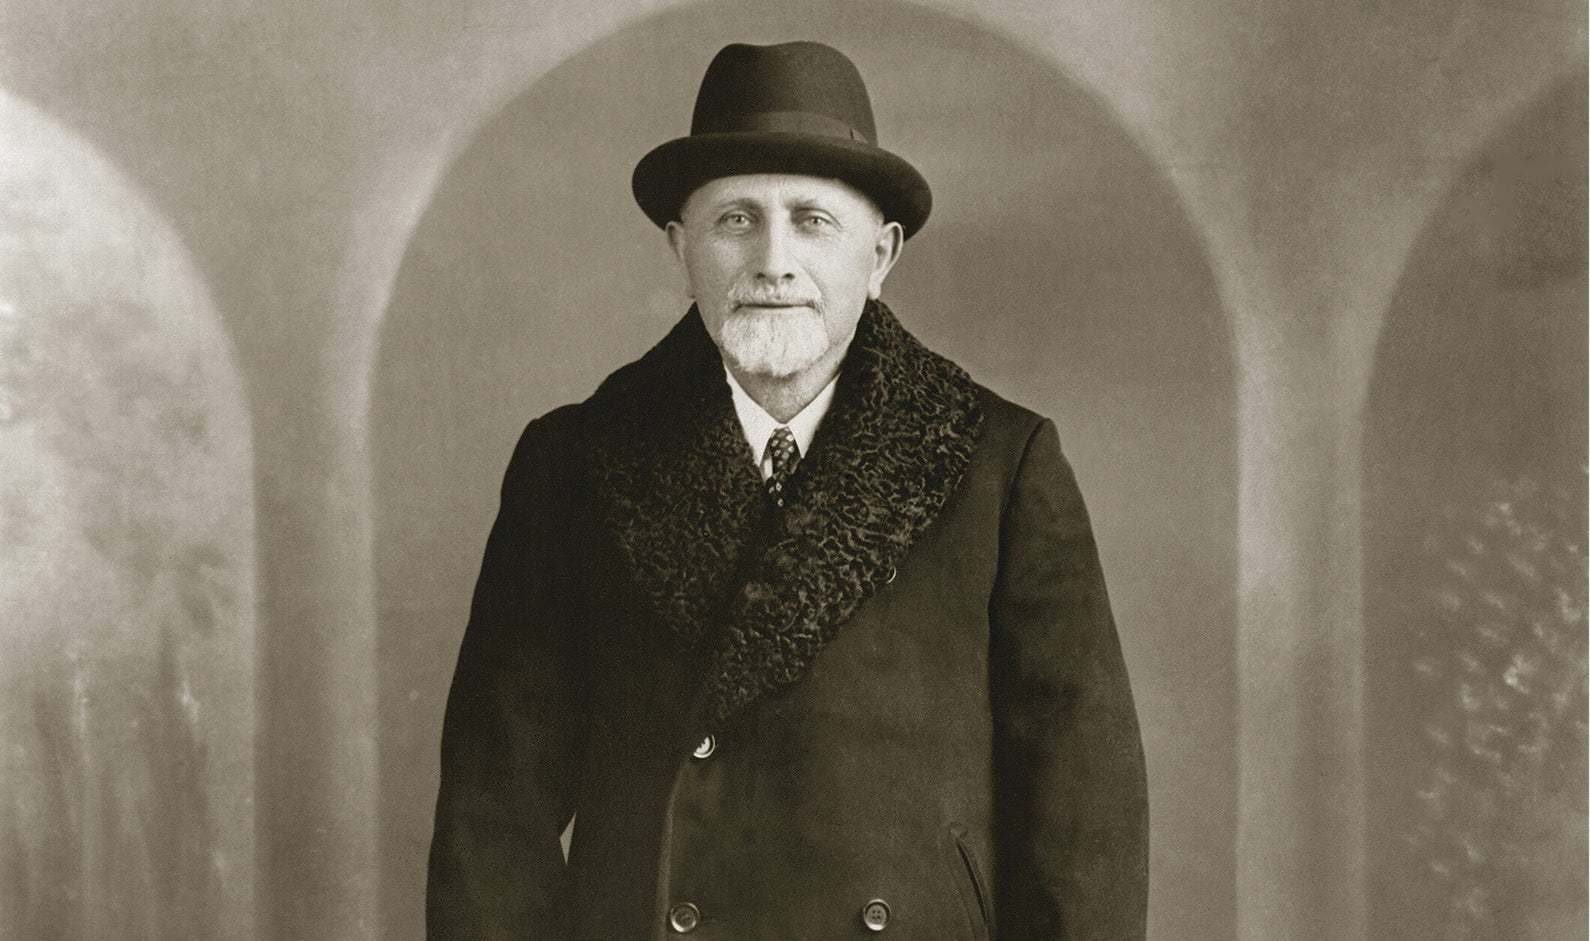 Photo of Hyman Moscot